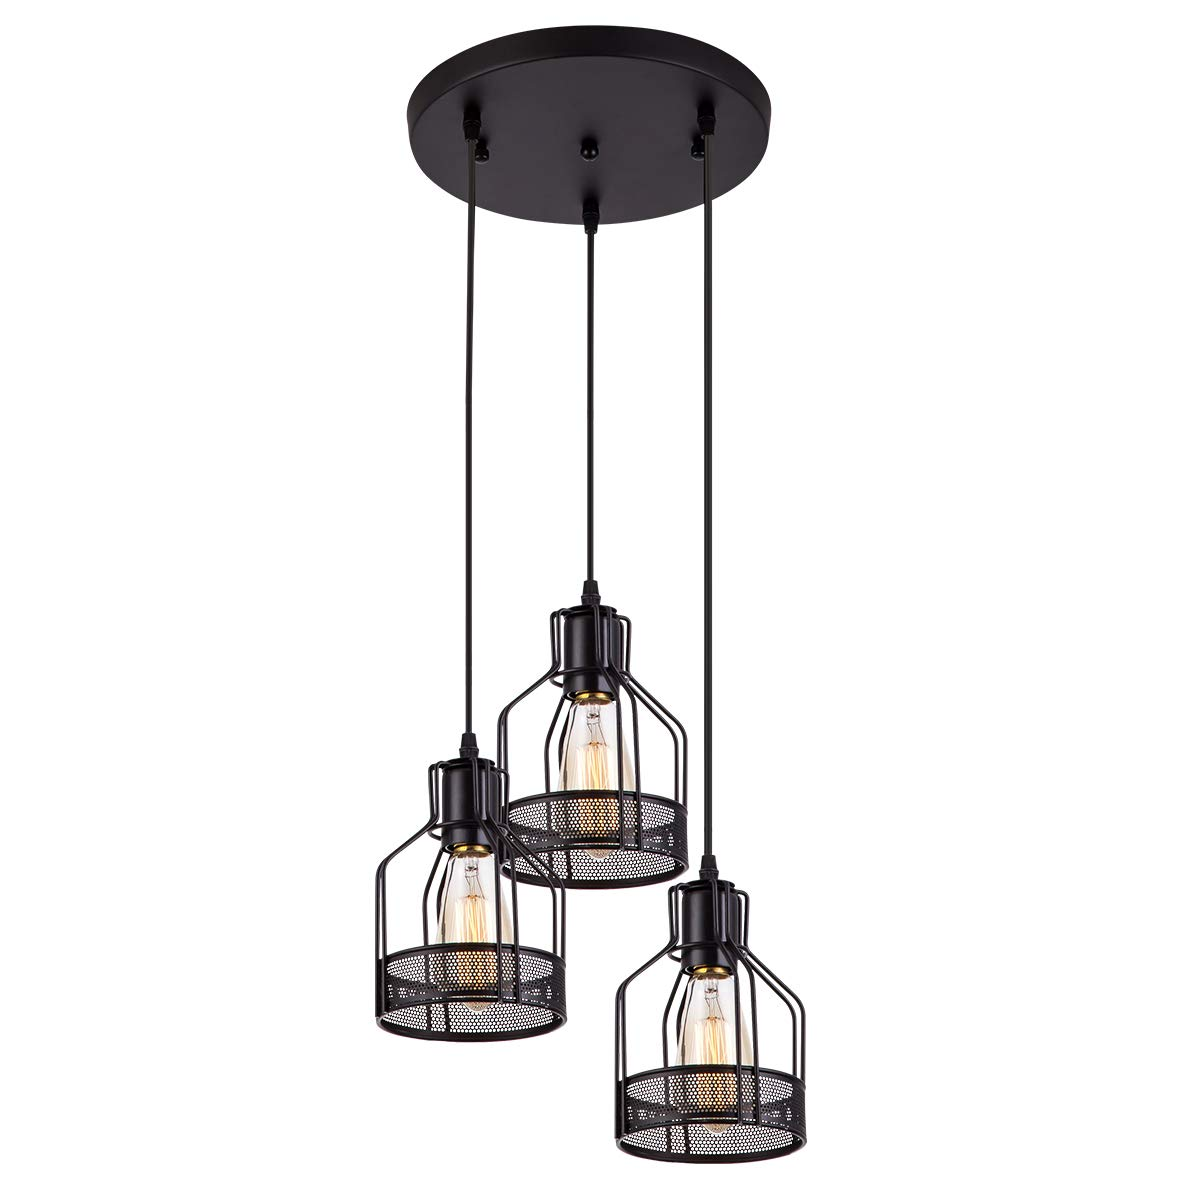 Pendant Light with Rustic Black Metal Cage Shade, Industrial Retro Matte Black Adjustable 3-Lights Hanging Lighting, Pendant lamp Fixtures for Home, Kitchen Island, Barn, Dining Room, Cafe, Farmhouse